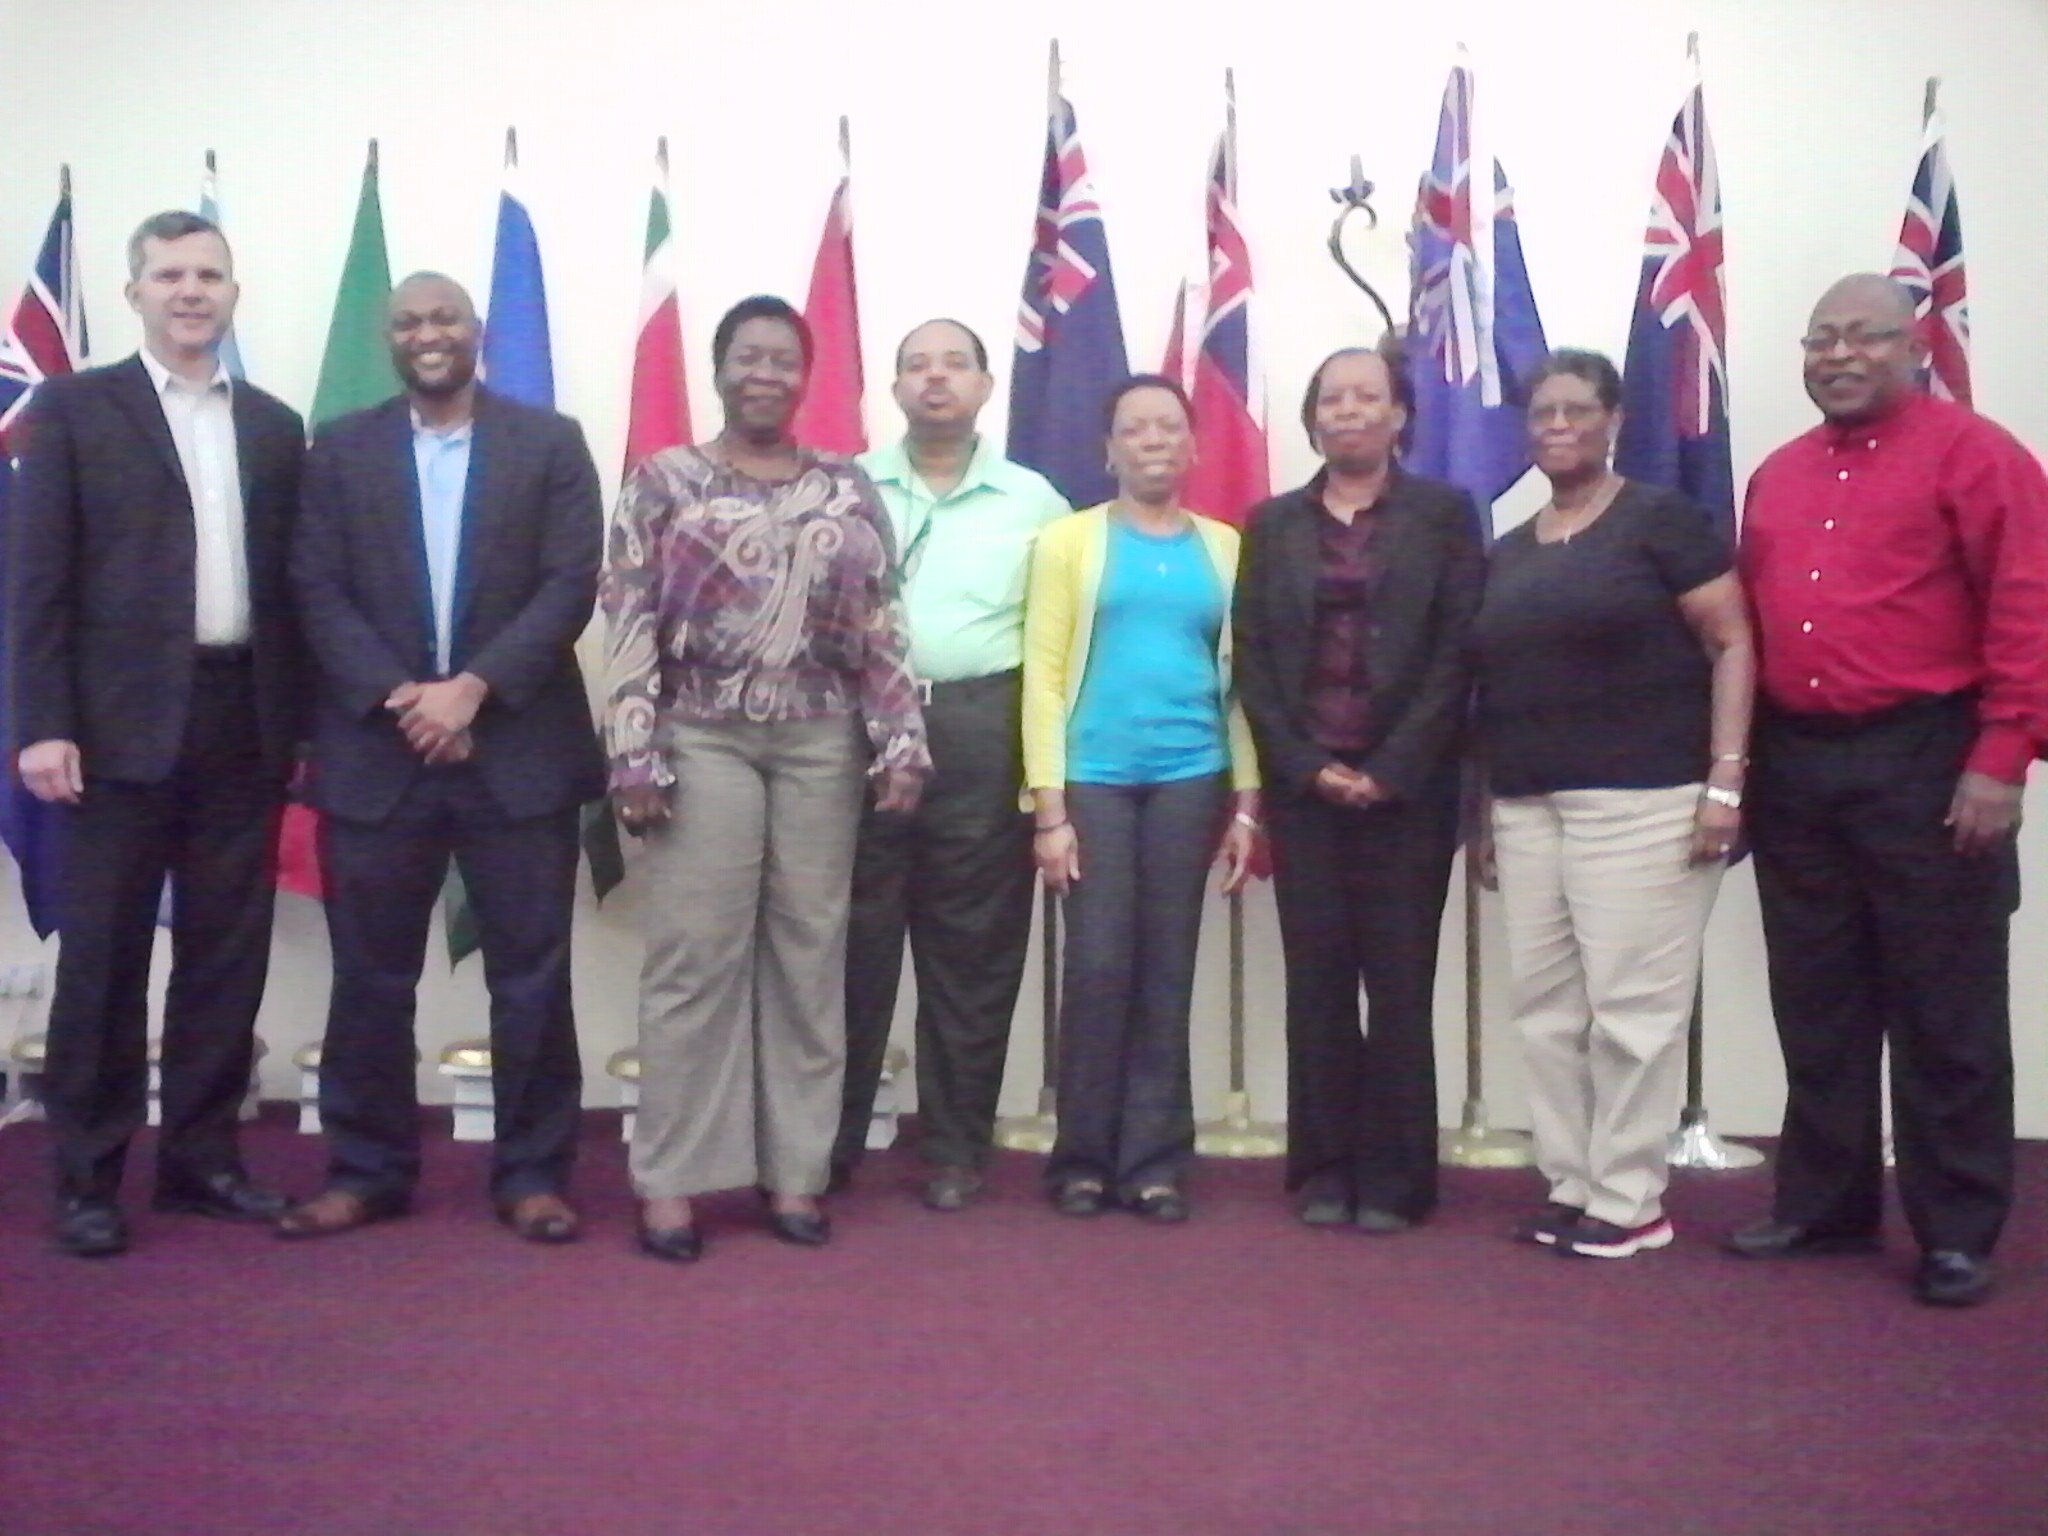 The first Board of Directors of the Caribbean Association of Professional Statisticians (CAPS): From left are, International Representative, Mr. Eric Rancourt, Director, International Cooperation Division, Statistics Canada; Vice President, Mr. Statc